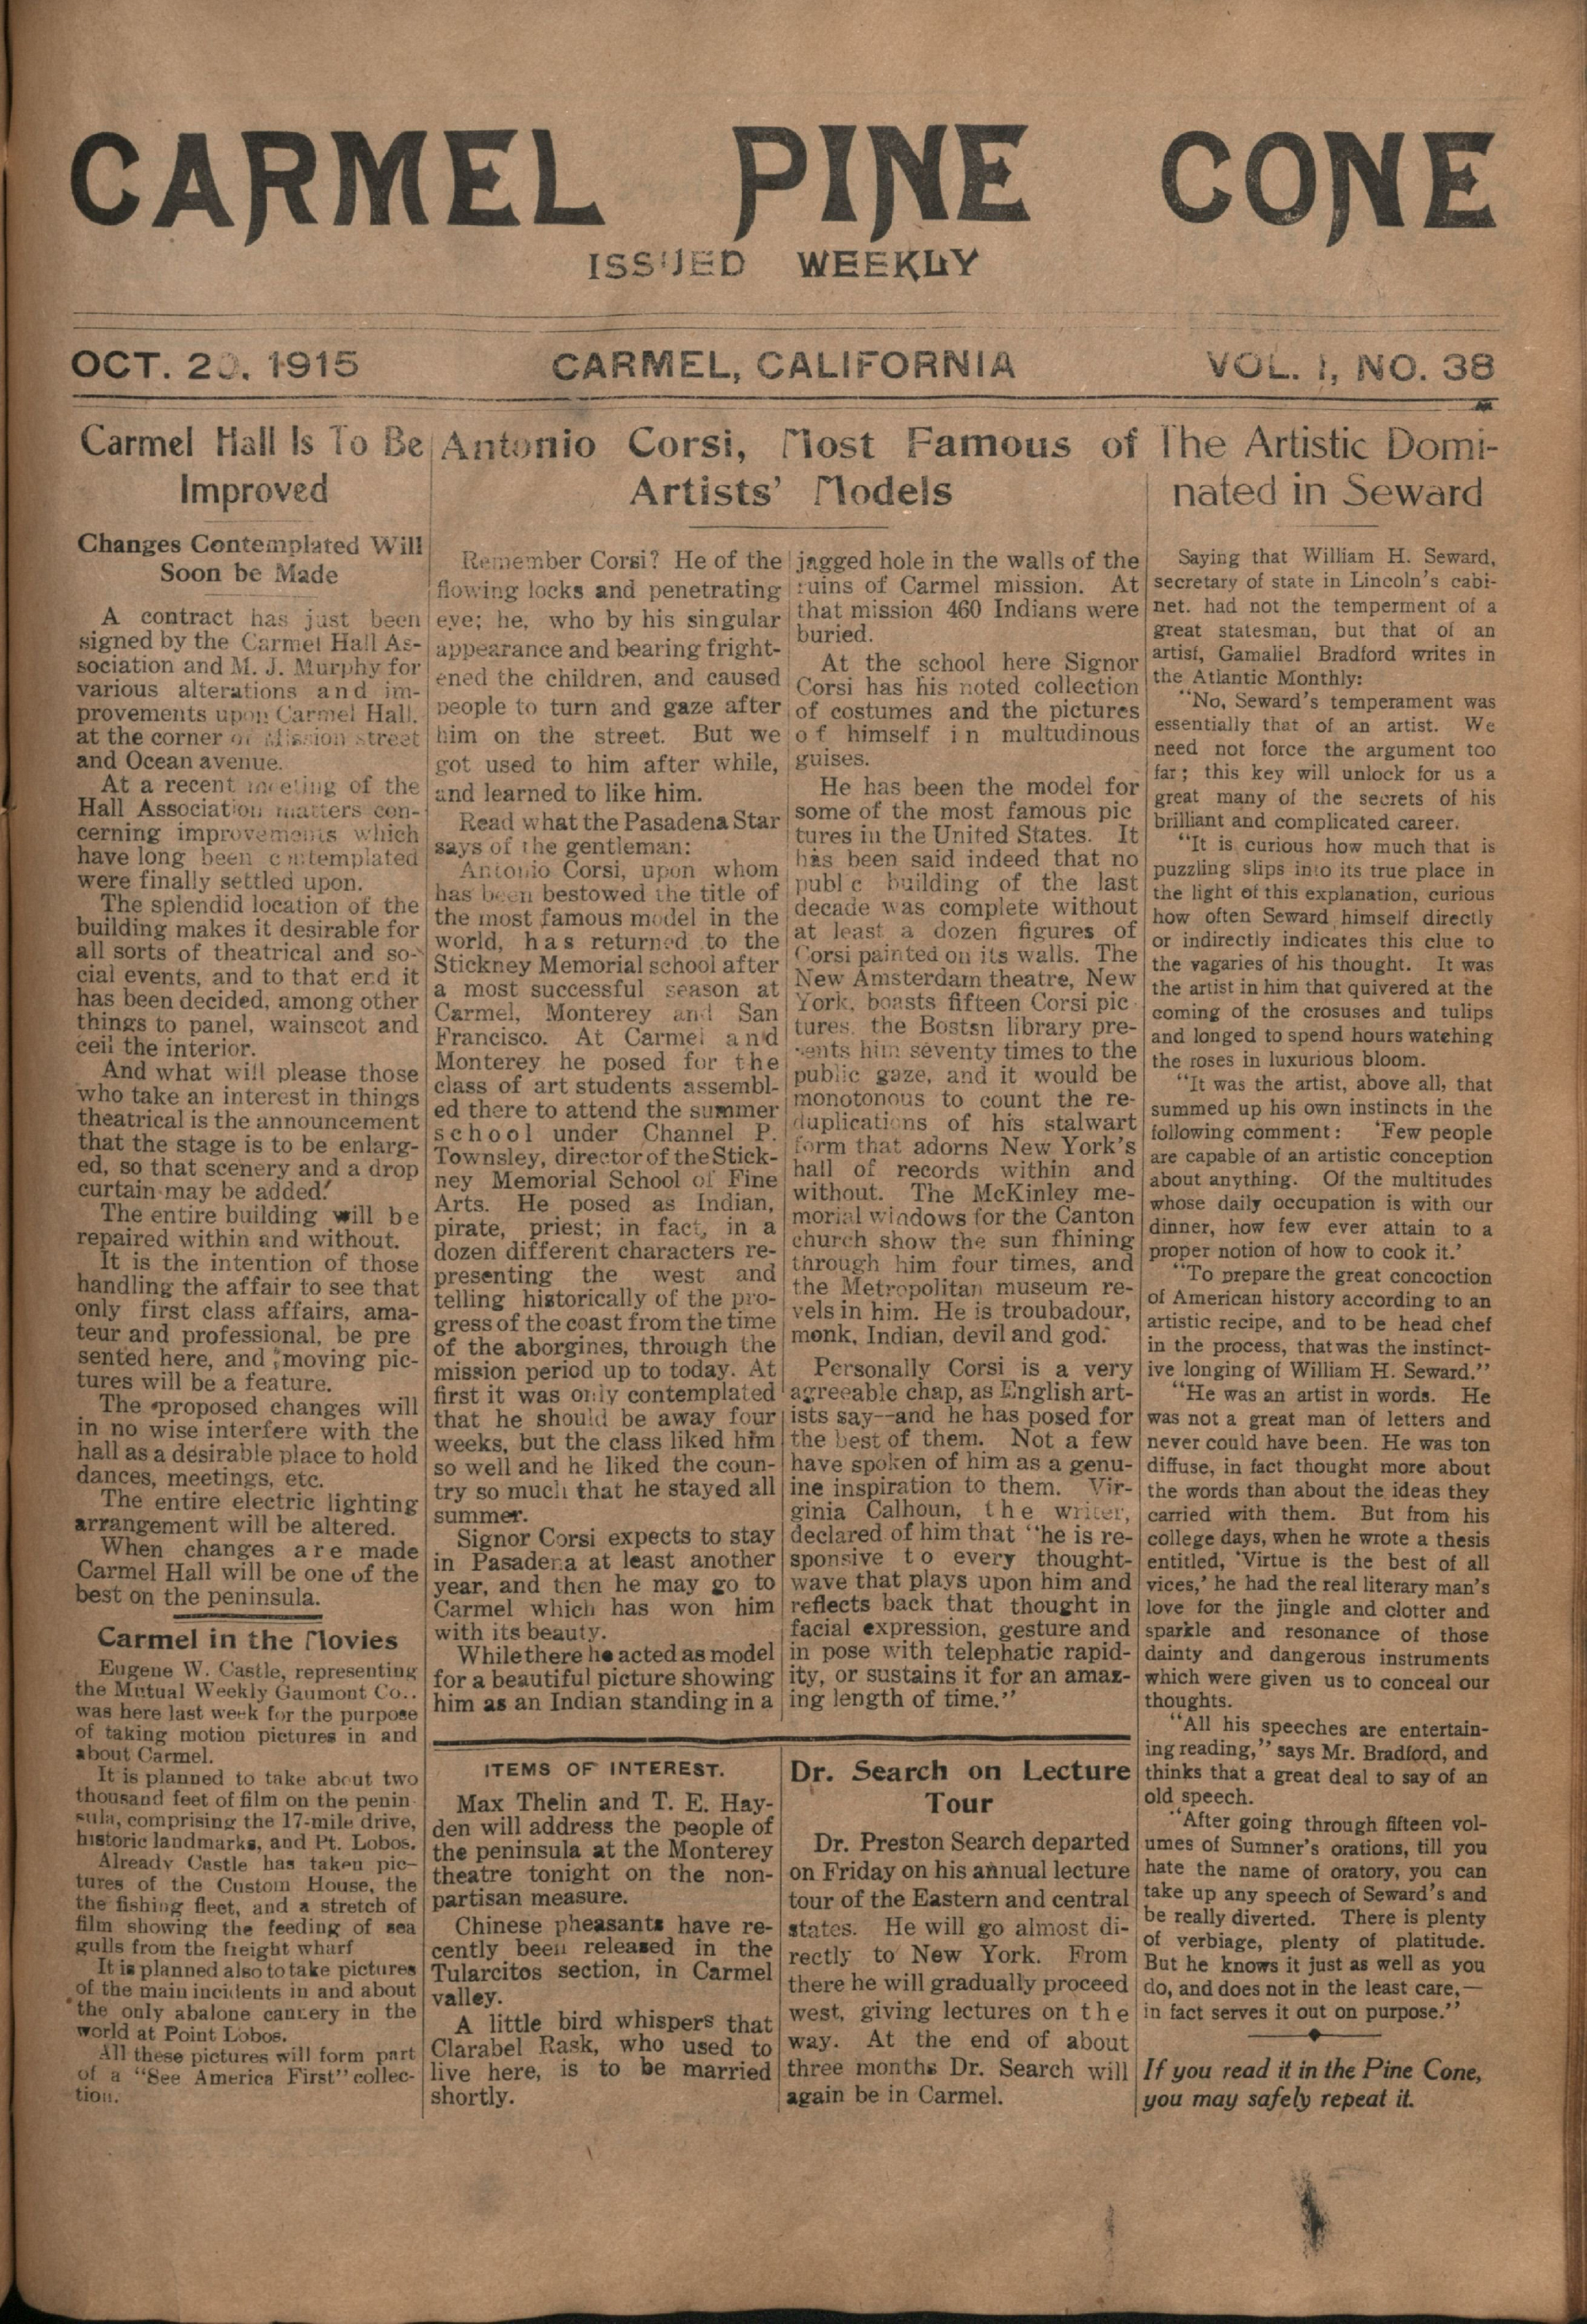 Front page of the                 October 20, 1915, Carmel Pine Cone